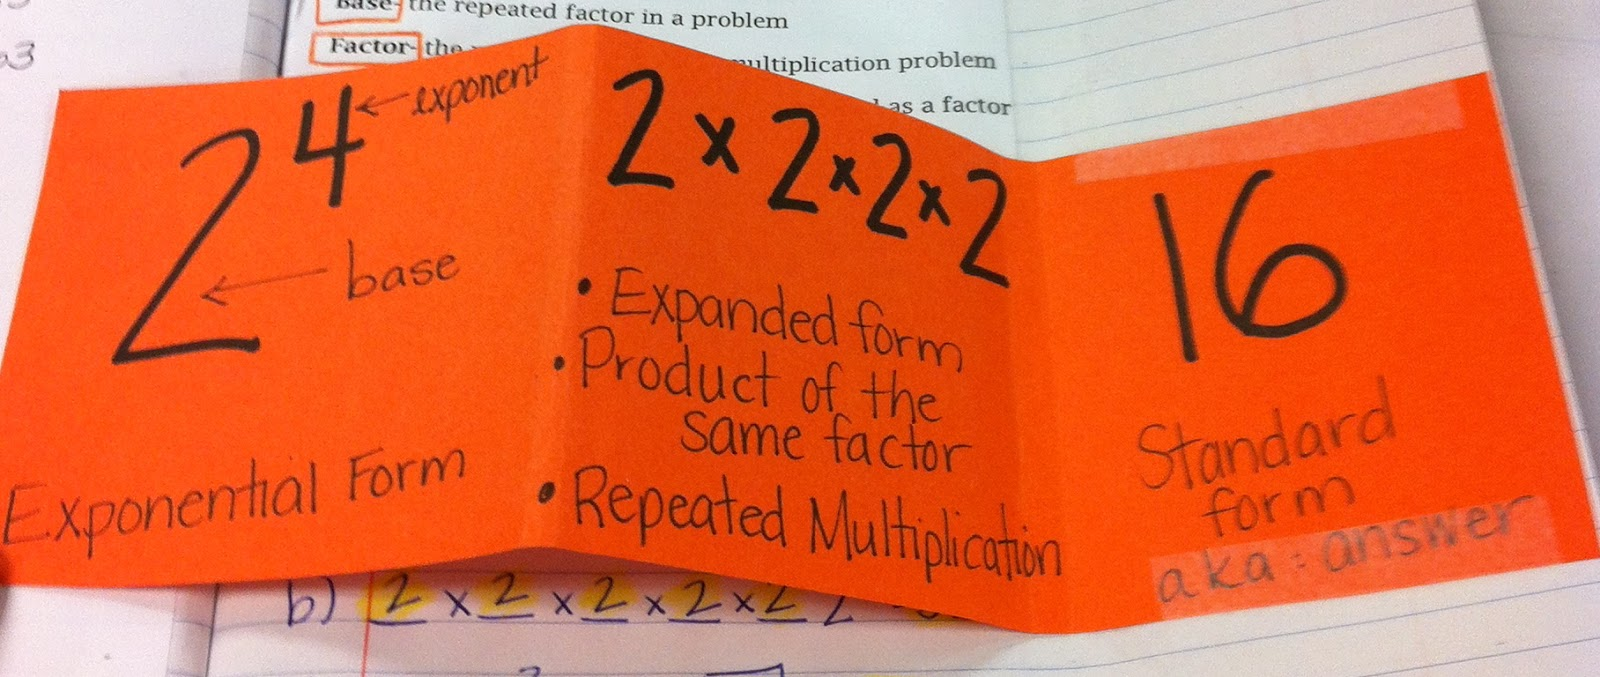 Powers And Exponents (1.2) - Lessons - Tes Teach